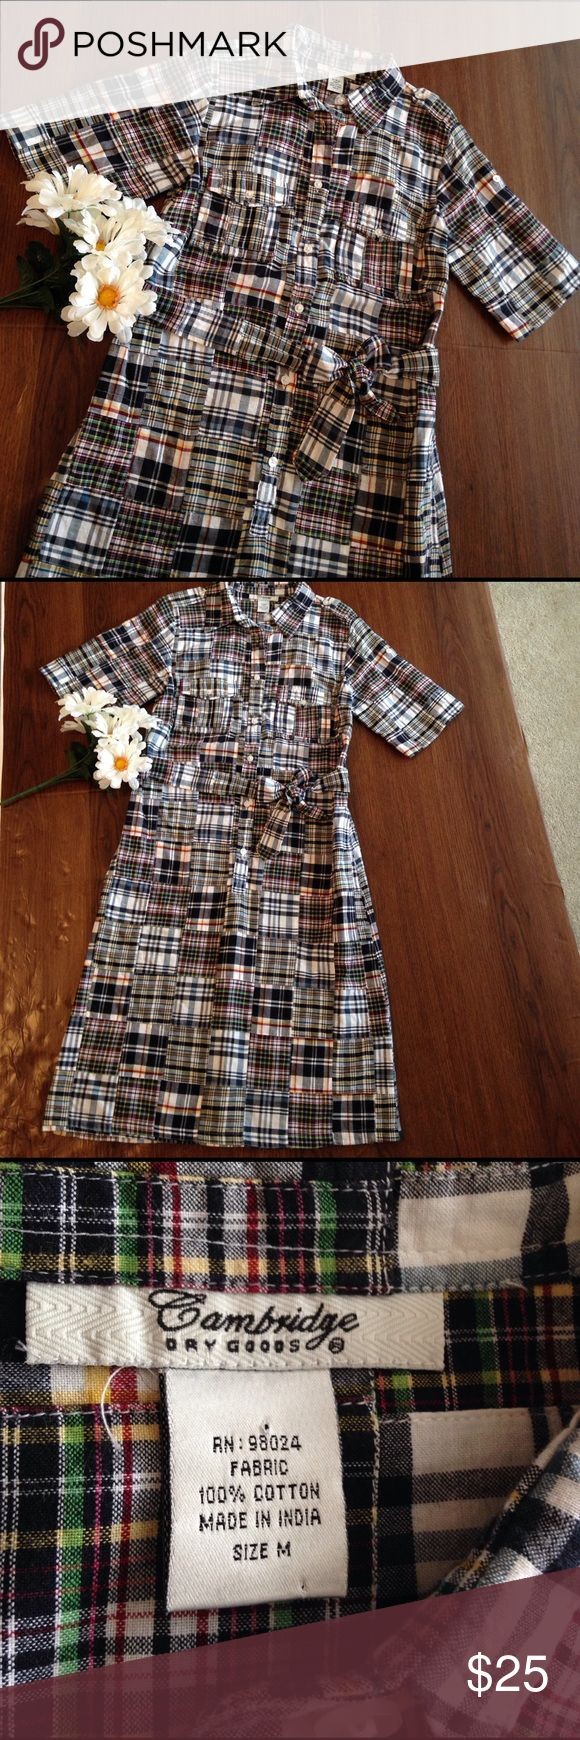 Cambridge Dry Goods madras dress Cambridge Dry Goods madras dress, buttons half way down, fabric belt, size medium, 41 inches shoulder to hem, waist 17 inches flat laying, excellent condition, sleeves have roll tabs to roll them up shorter. Perfect dress for summer picnics and barbecues!!! Cambridge Dry goods Dresses